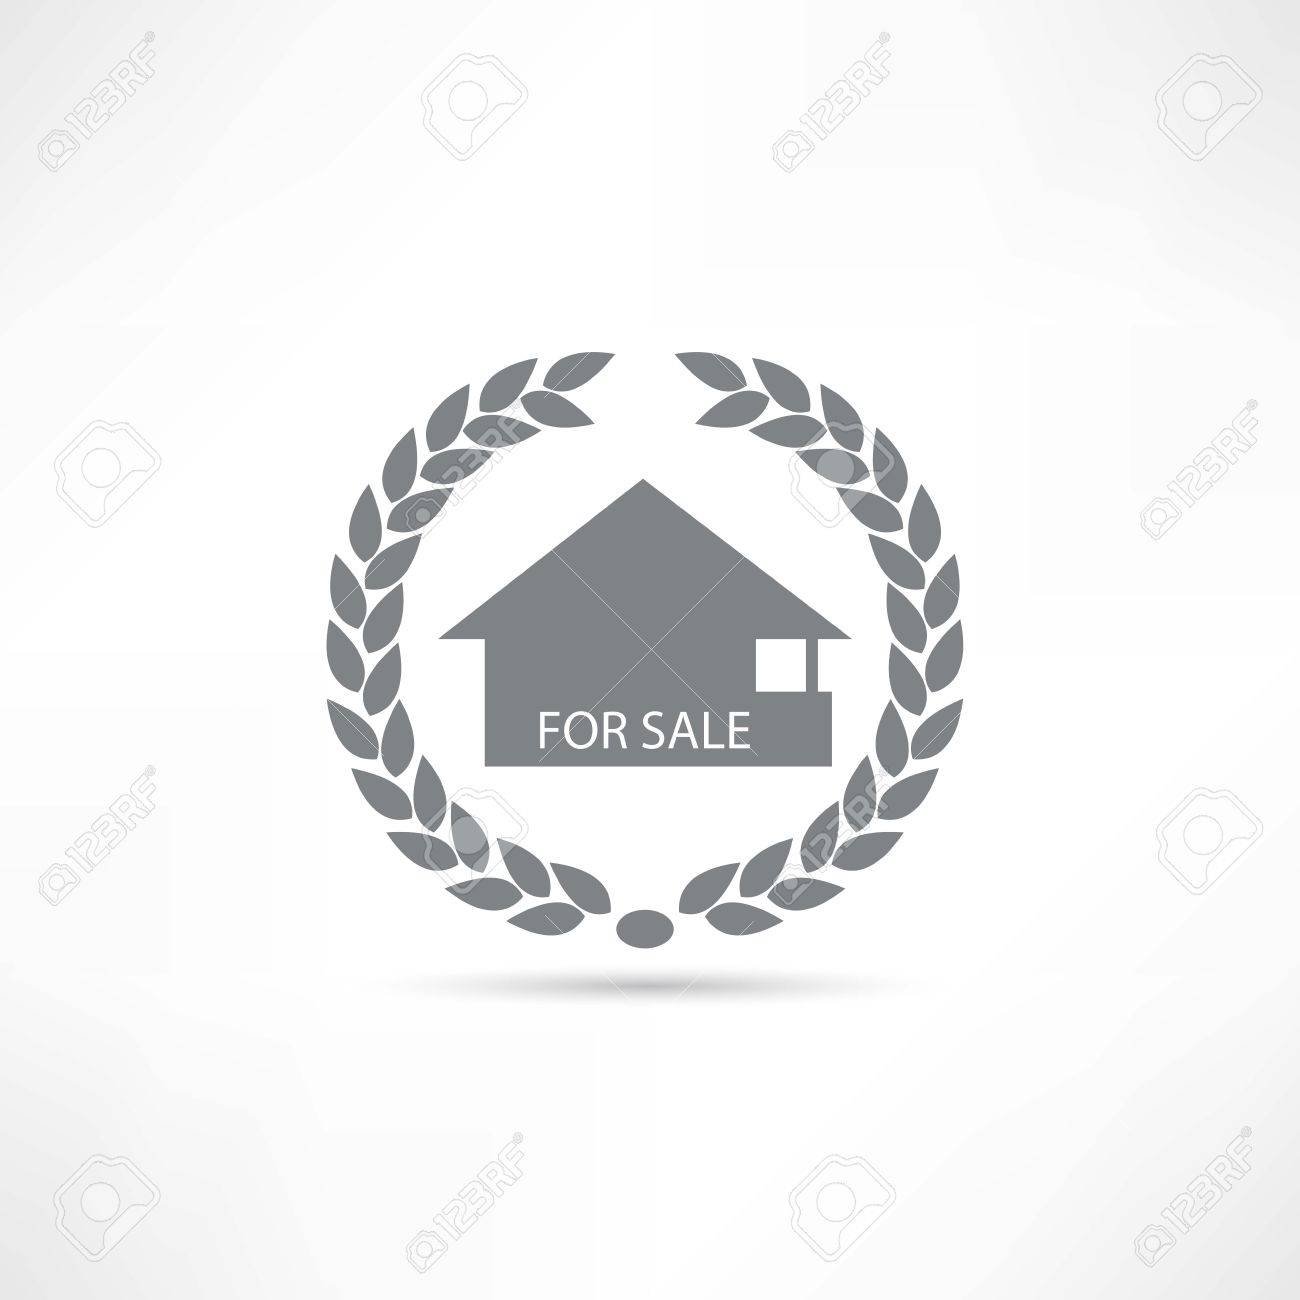 House for sale icon Stock Vector - 22660737